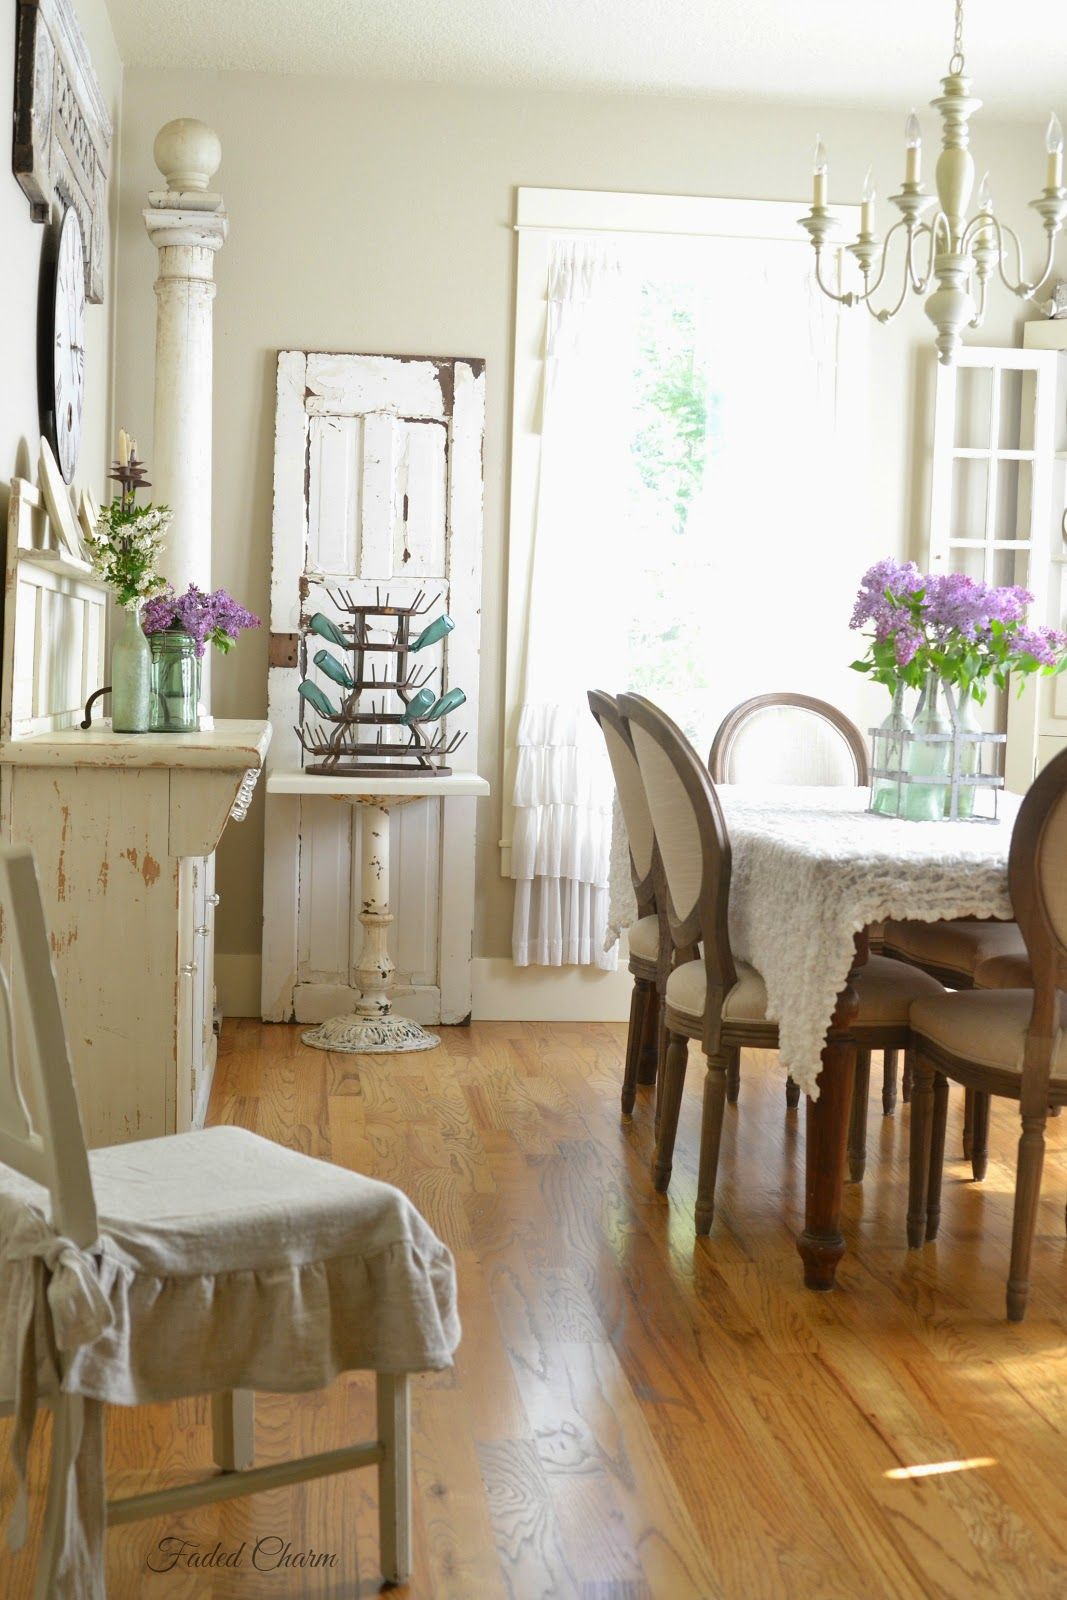 Faded Charm: ~For the Love of Lilacs~